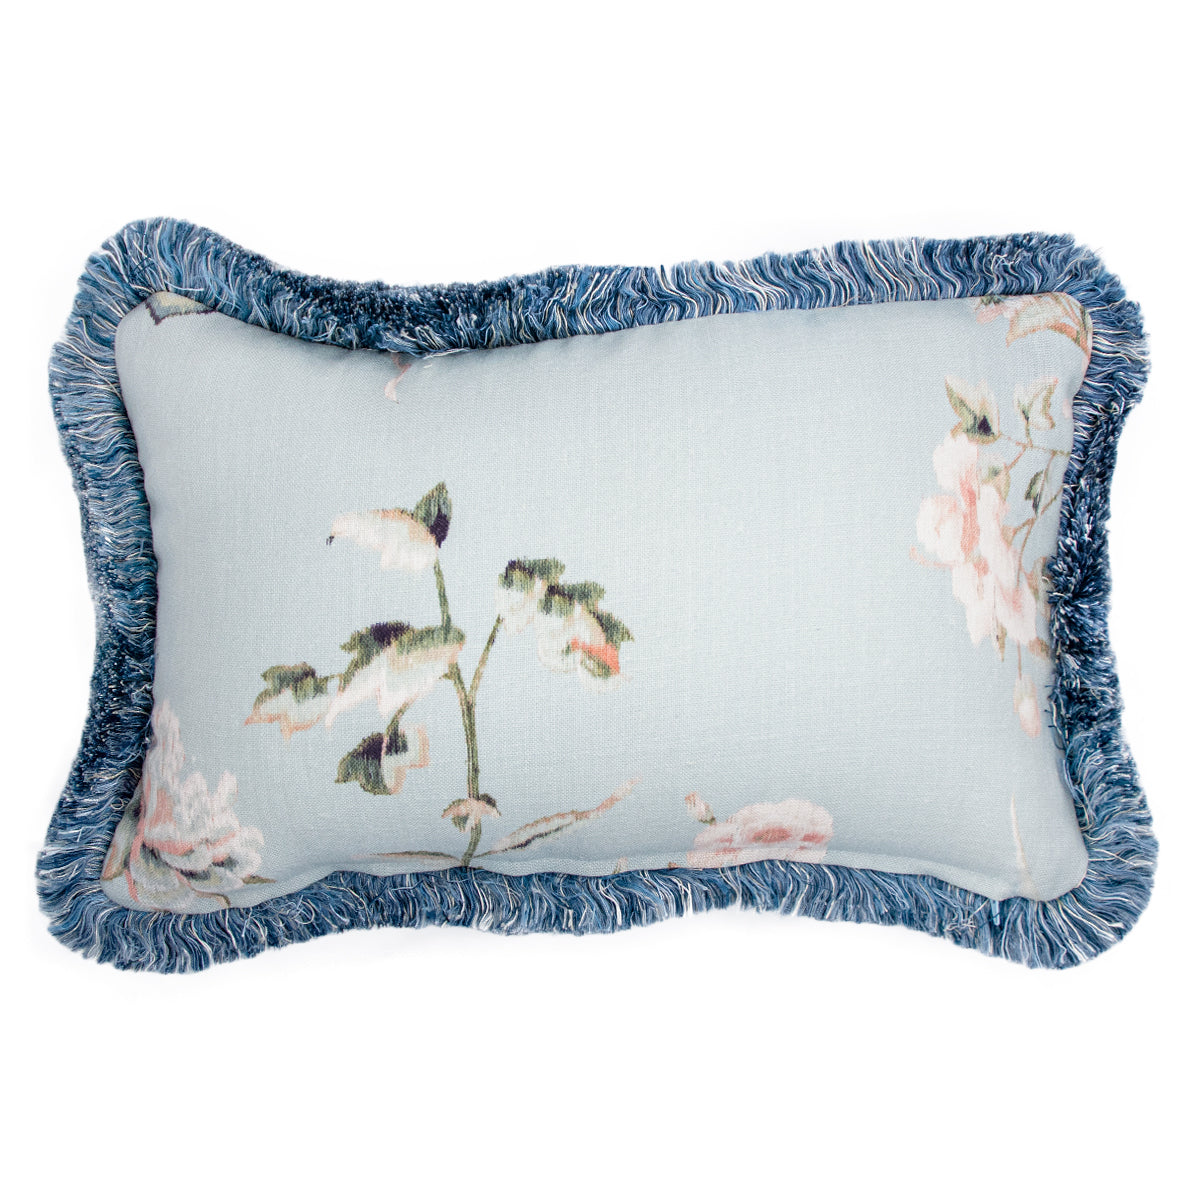 47x32cm角 コラージュクッション Blue Sky Garden with Blush Fringe